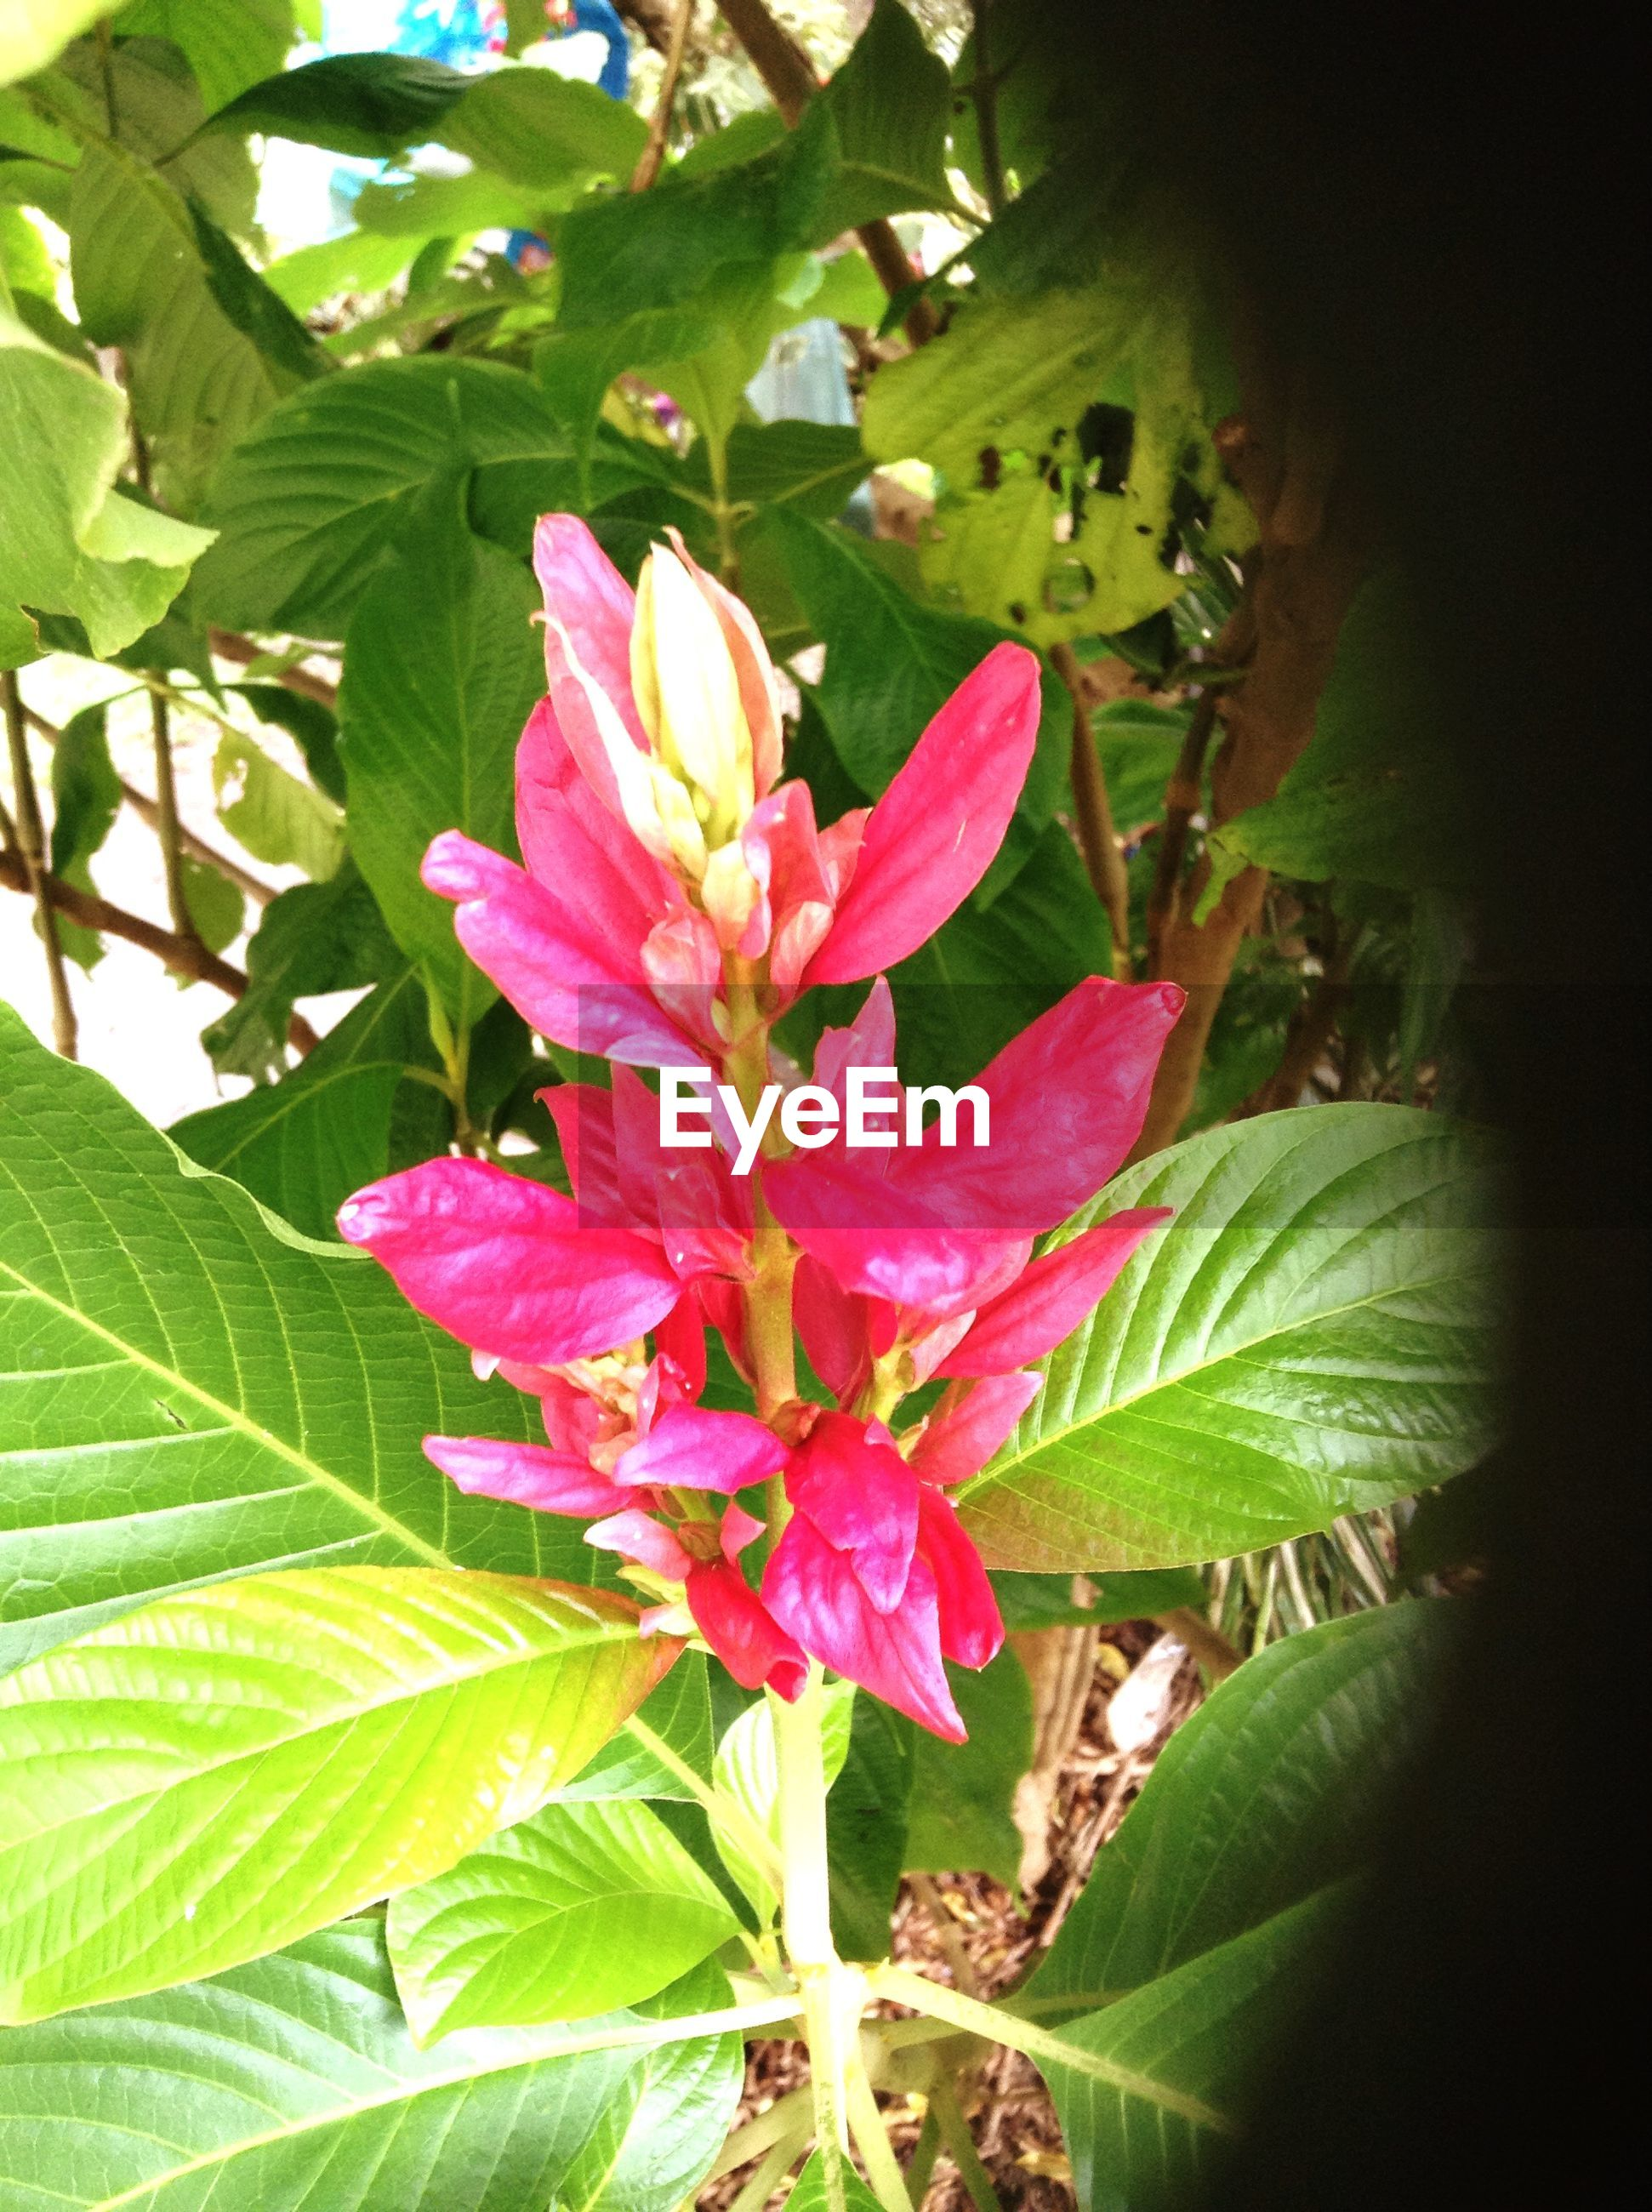 flower, freshness, leaf, growth, petal, fragility, beauty in nature, flower head, plant, close-up, nature, green color, blooming, pink color, focus on foreground, in bloom, outdoors, day, blossom, no people